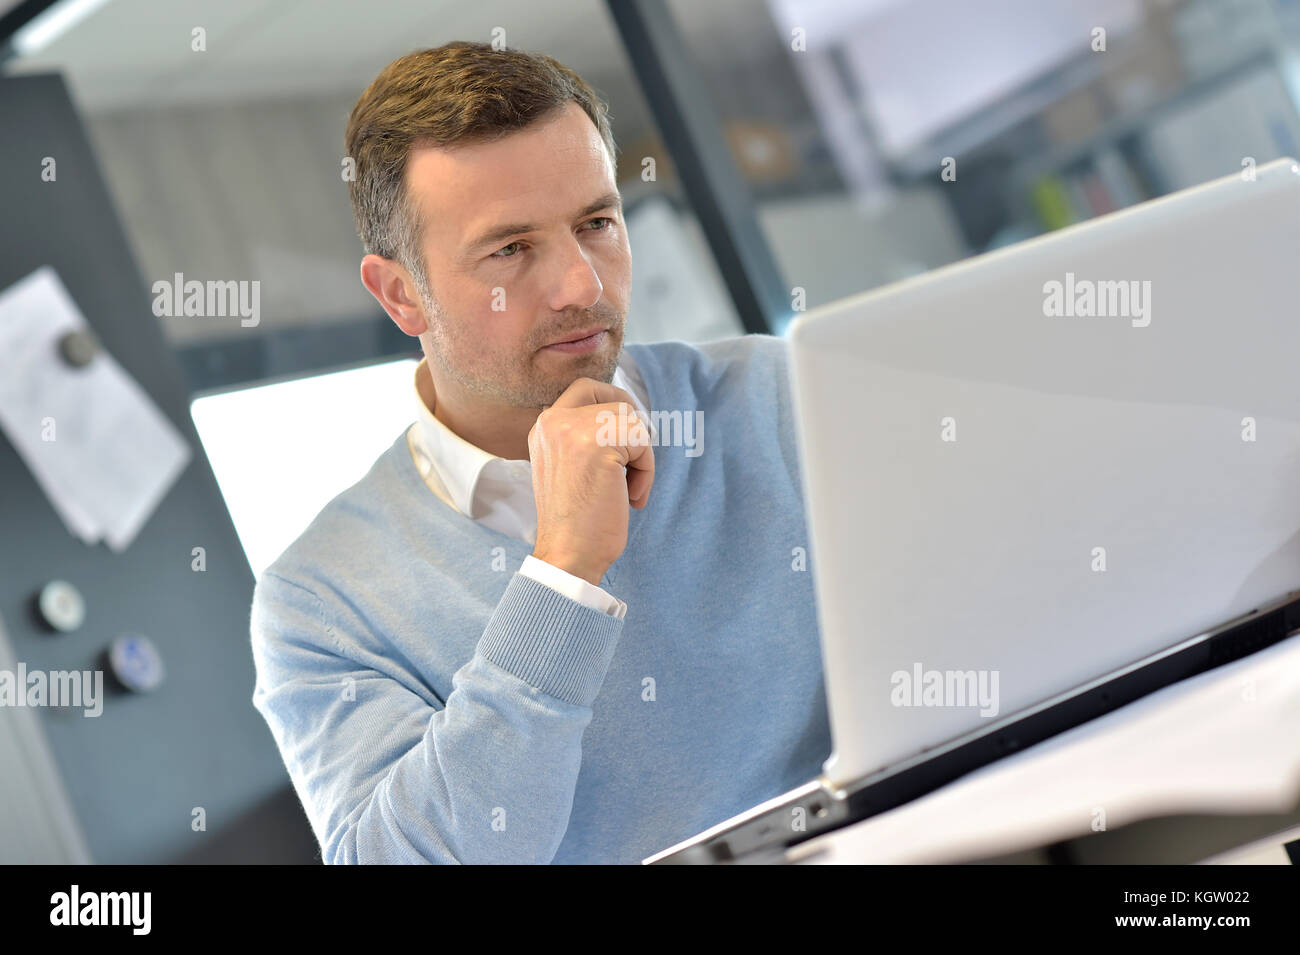 Industrial manager in office working on laptop - Stock Image